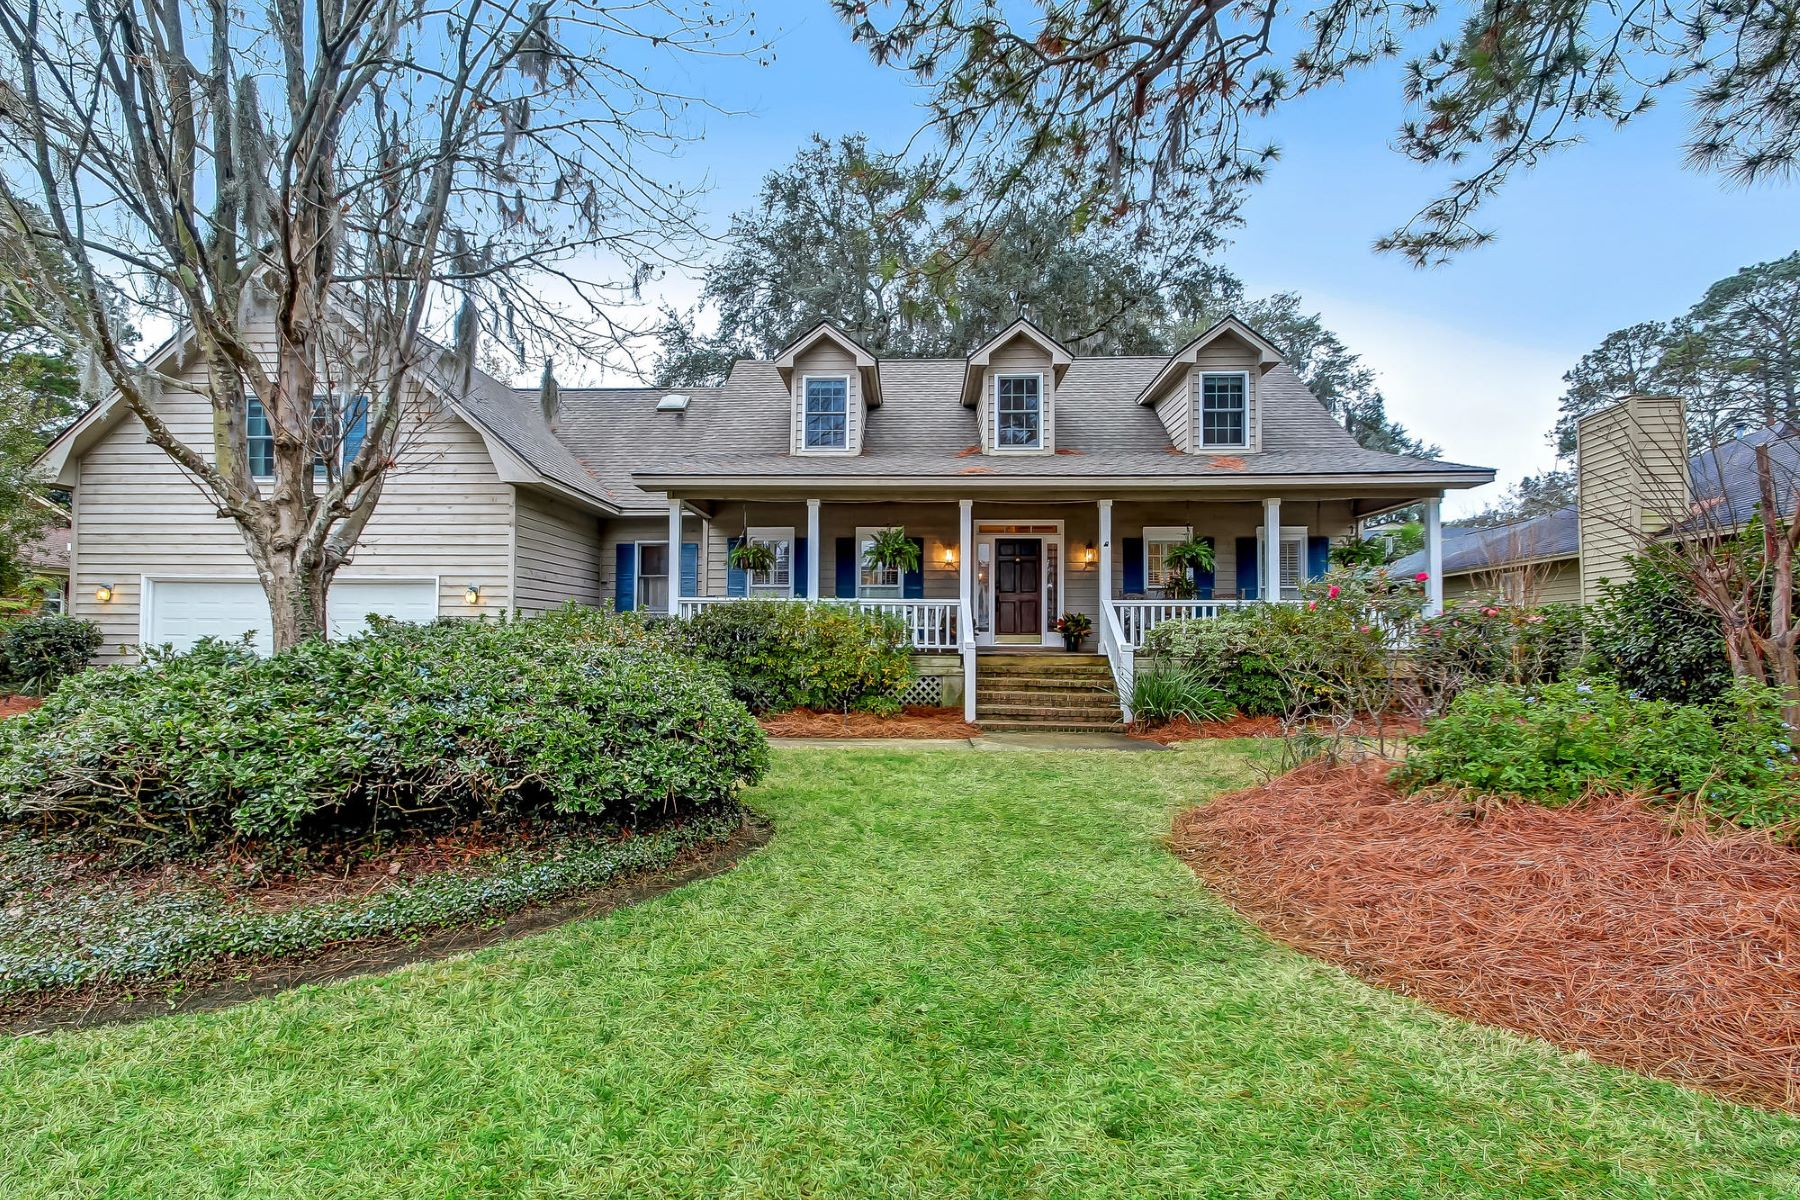 Single Family Home for Sale at 131 Cardinal Road 131 Cardinal Road Savannah, Georgia 31406 United States